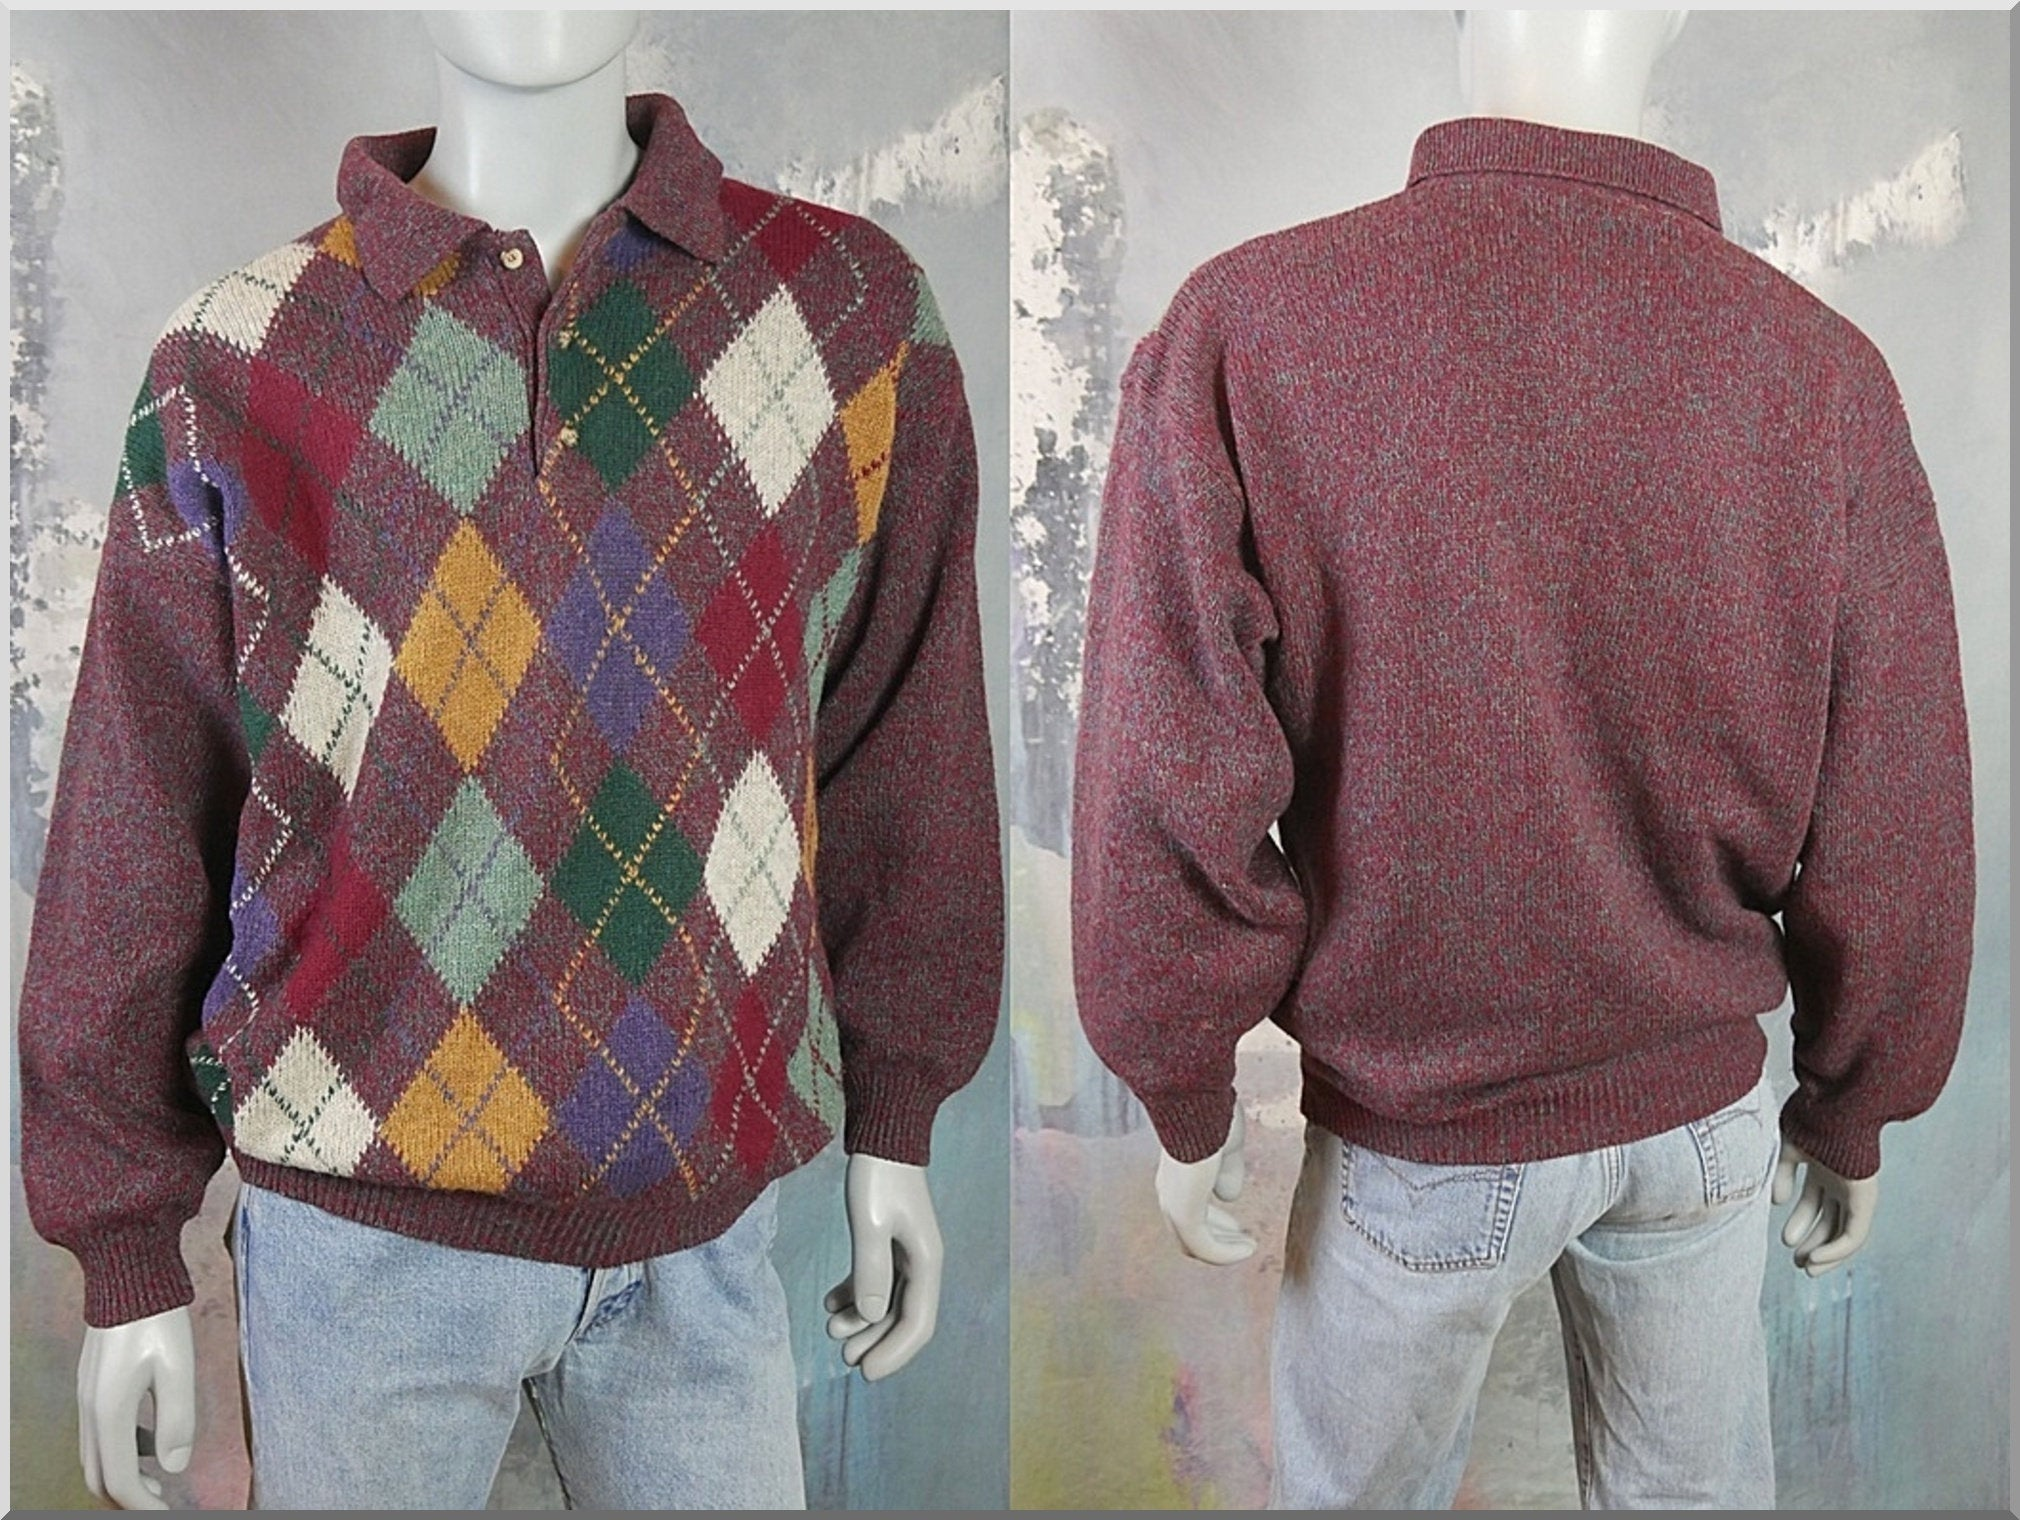 Argyle Sweater Shirt, 1980s Italian Vintage Light Burgundy Wool Blend Knit Pullover Jumper: Size 46 to 48 US/UK - DownShifting Vintage Menswear